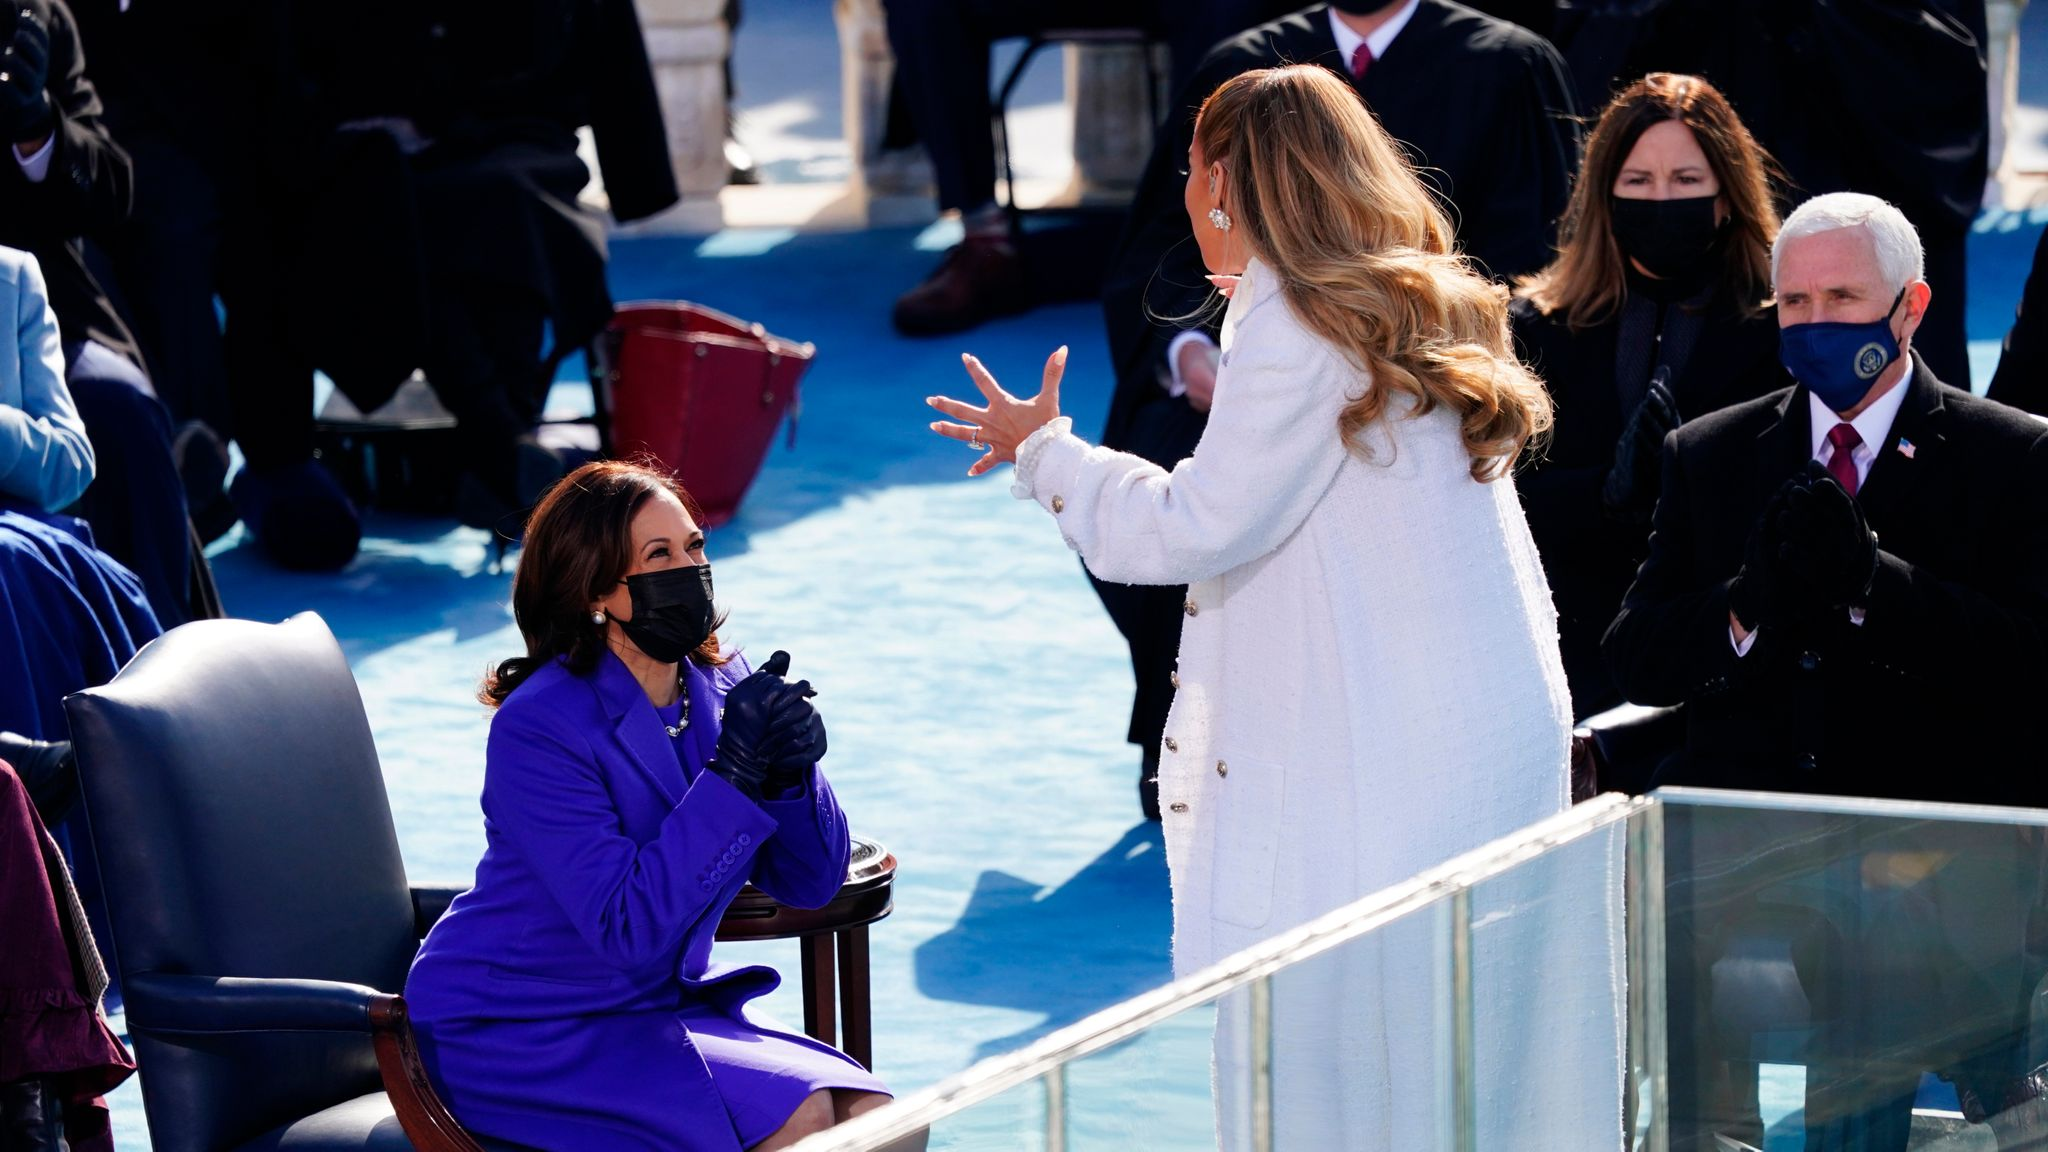 Vice President Kamala Harris reacts after singer Jennifer Lopez performed during the inauguration. Pic: AP